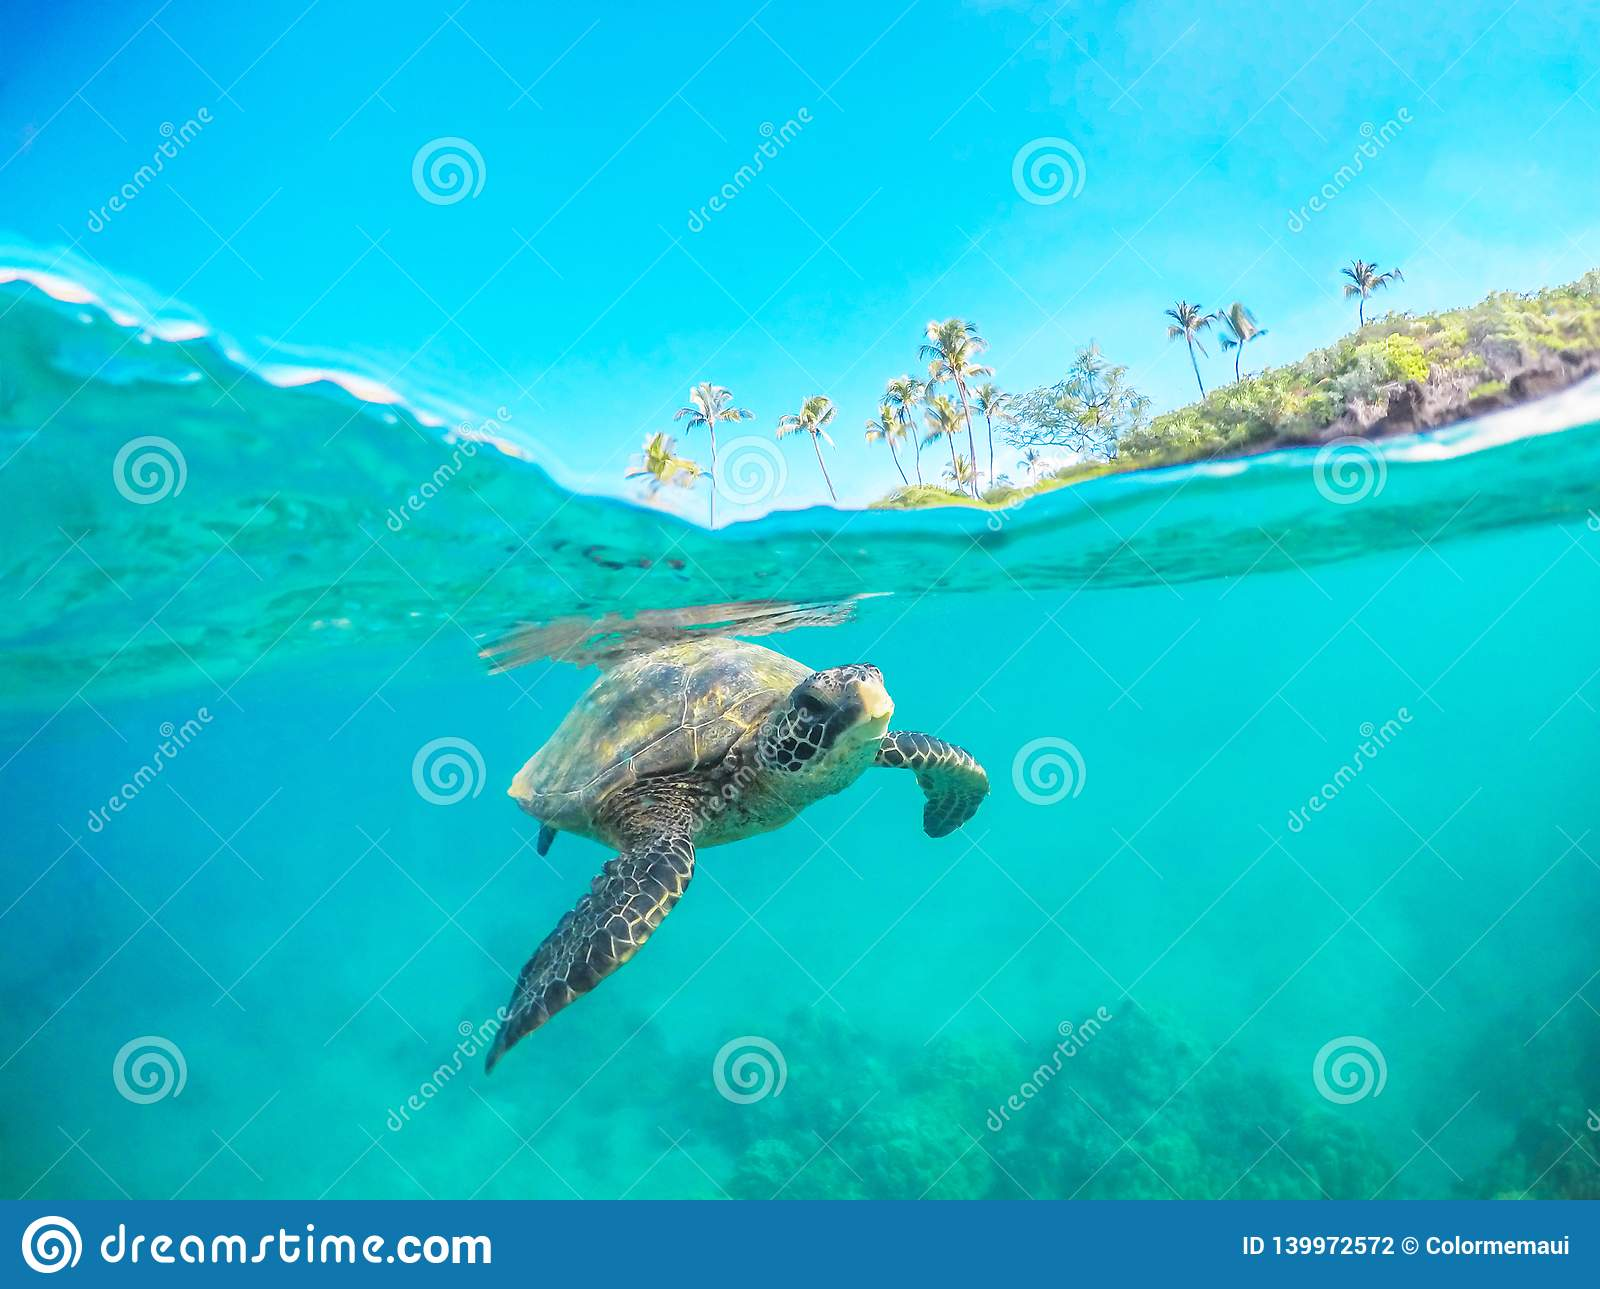 Green Sea Turtle Split Shot Swimming in Maui Hawaii